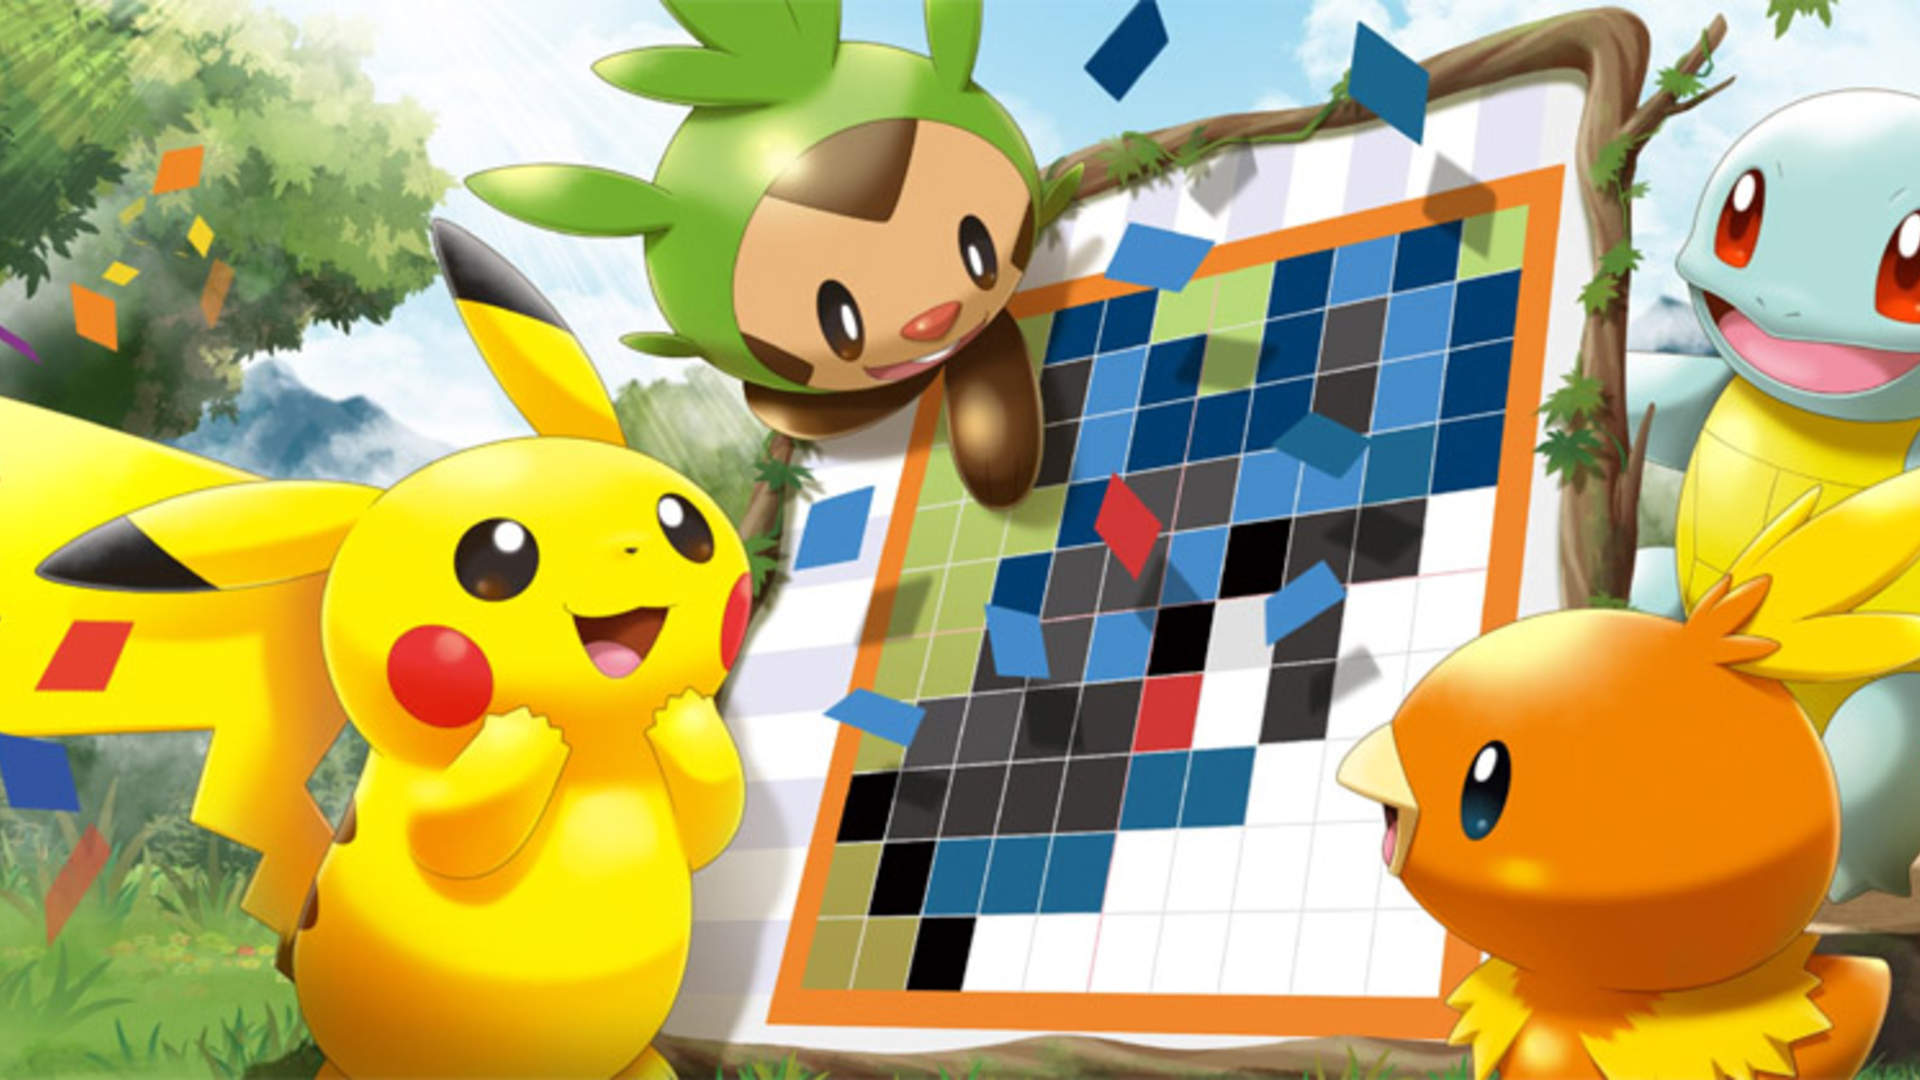 Picross and Other Fun Logic Games You Can't Miss This Summer